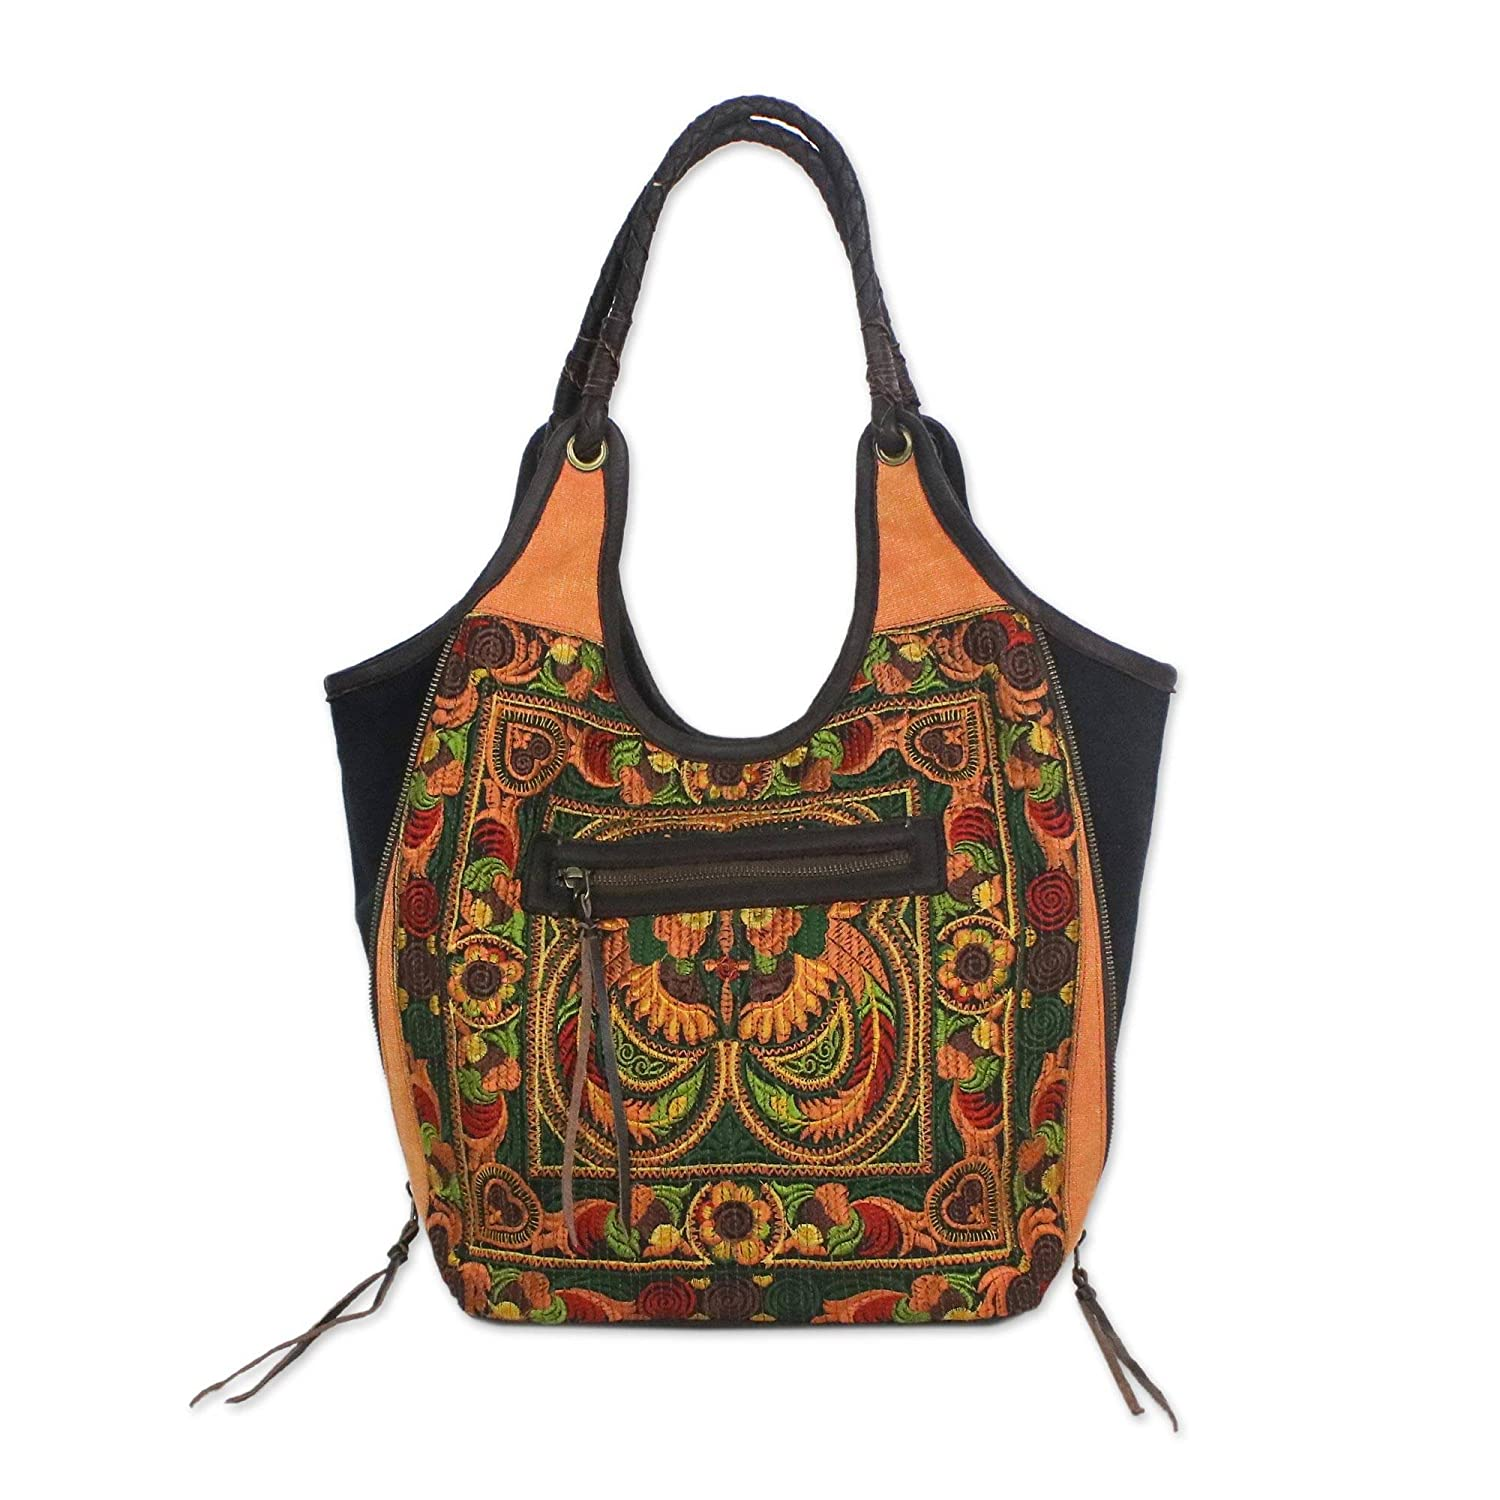 5822f3a7e7 NOVICA Orange and Green Embroidered Shoulder Bag with Leather Accents